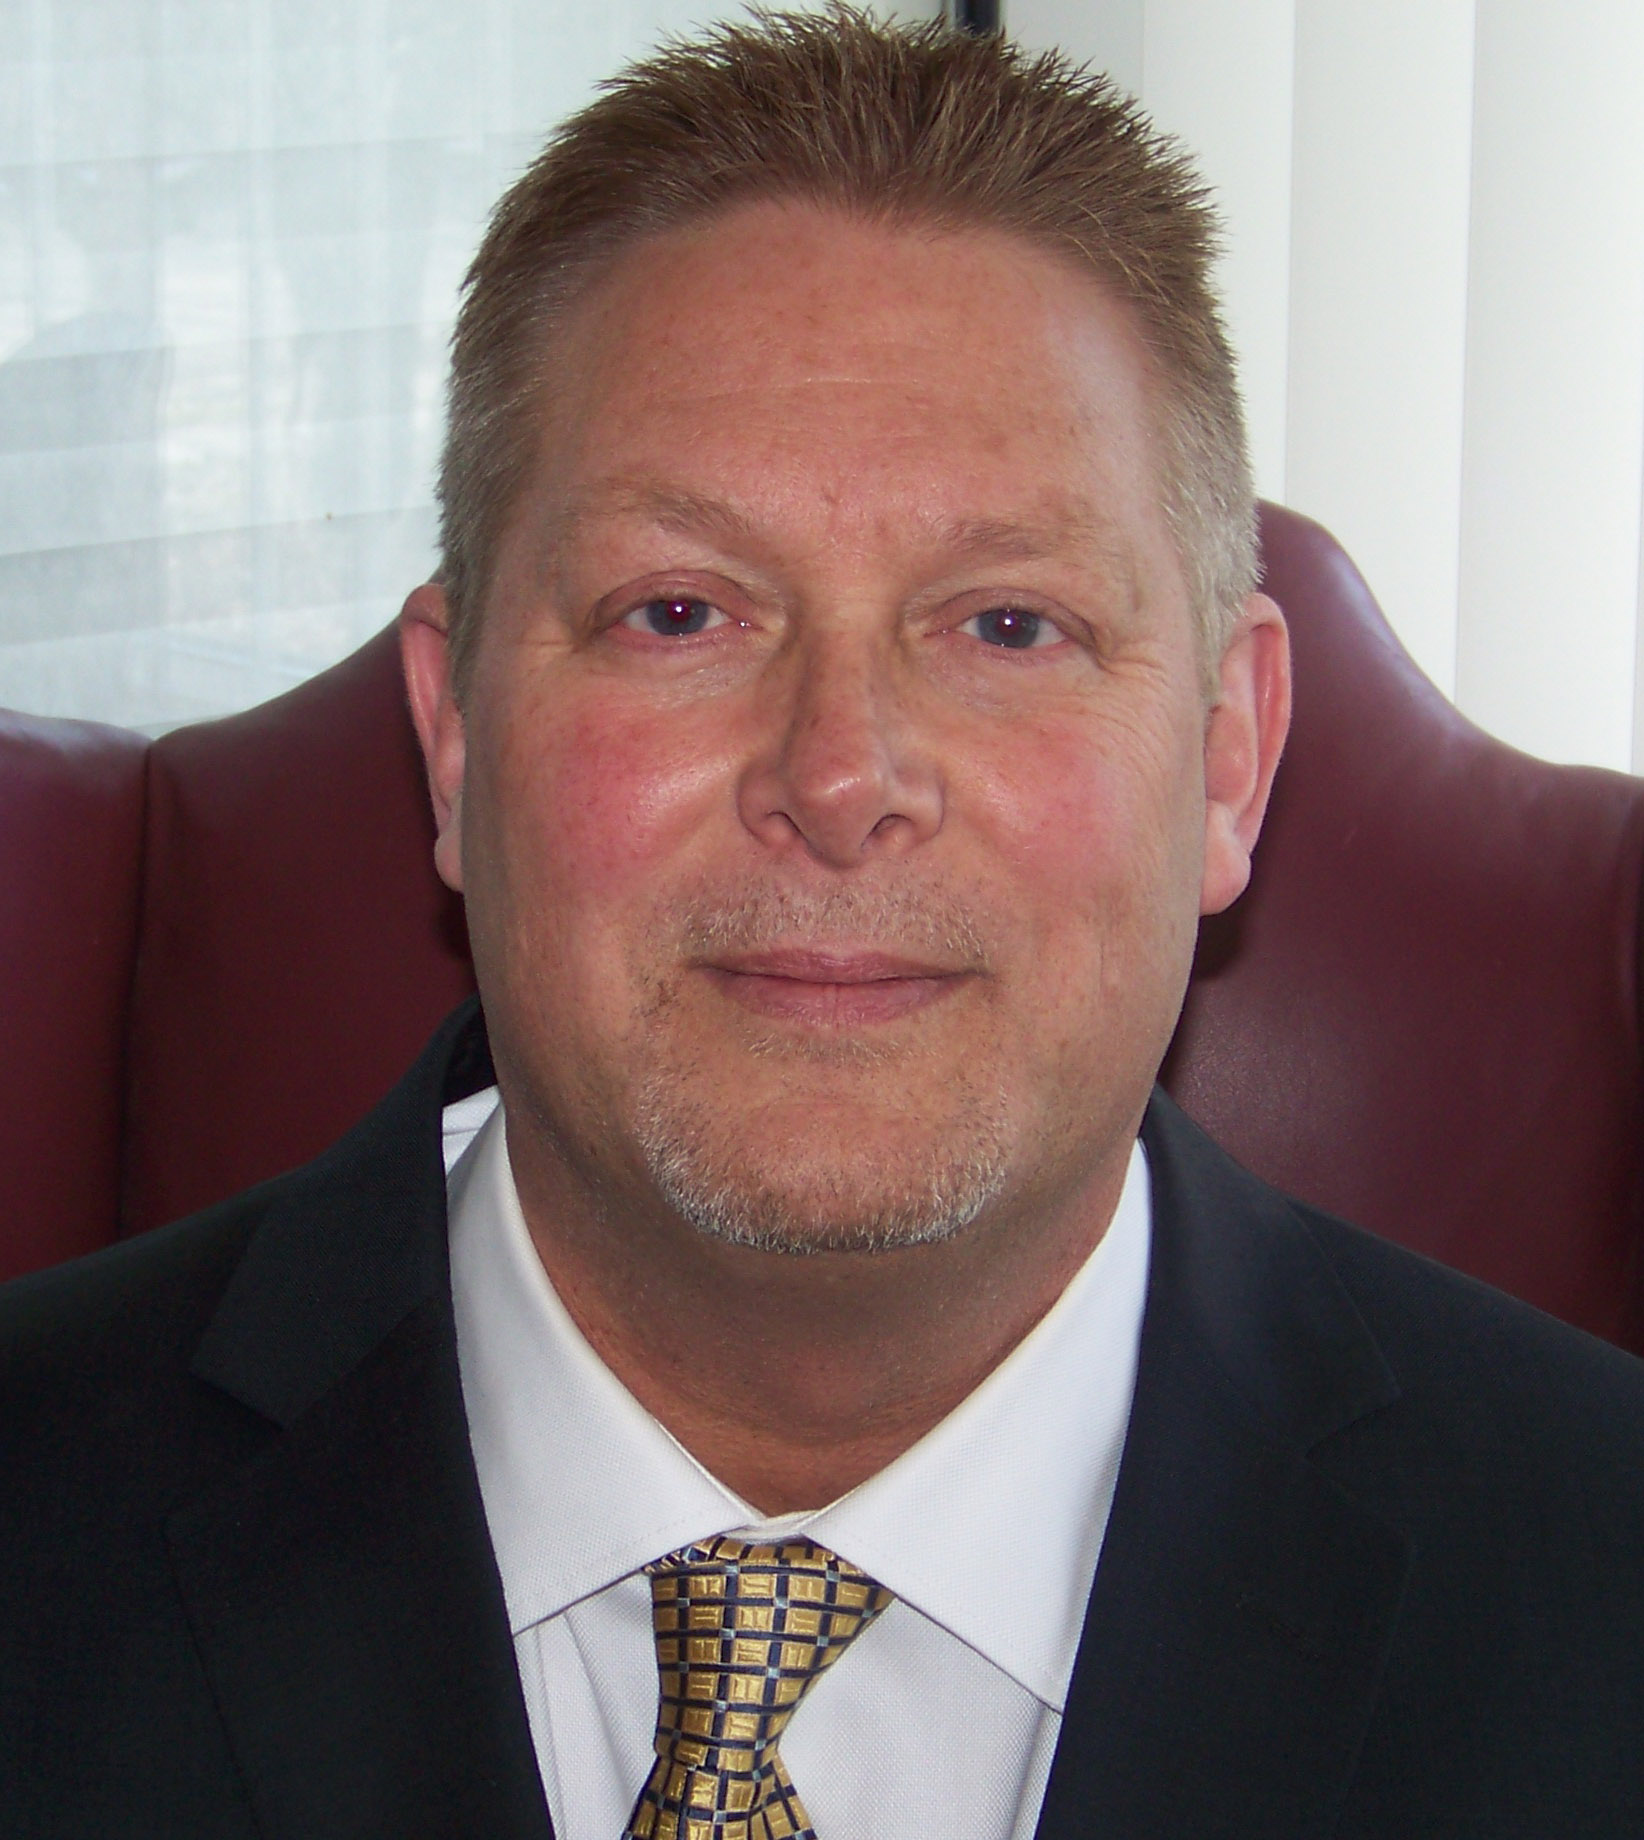 Dale Krueger - Dale brings over 25 years experience to Tangible Assets LLC.